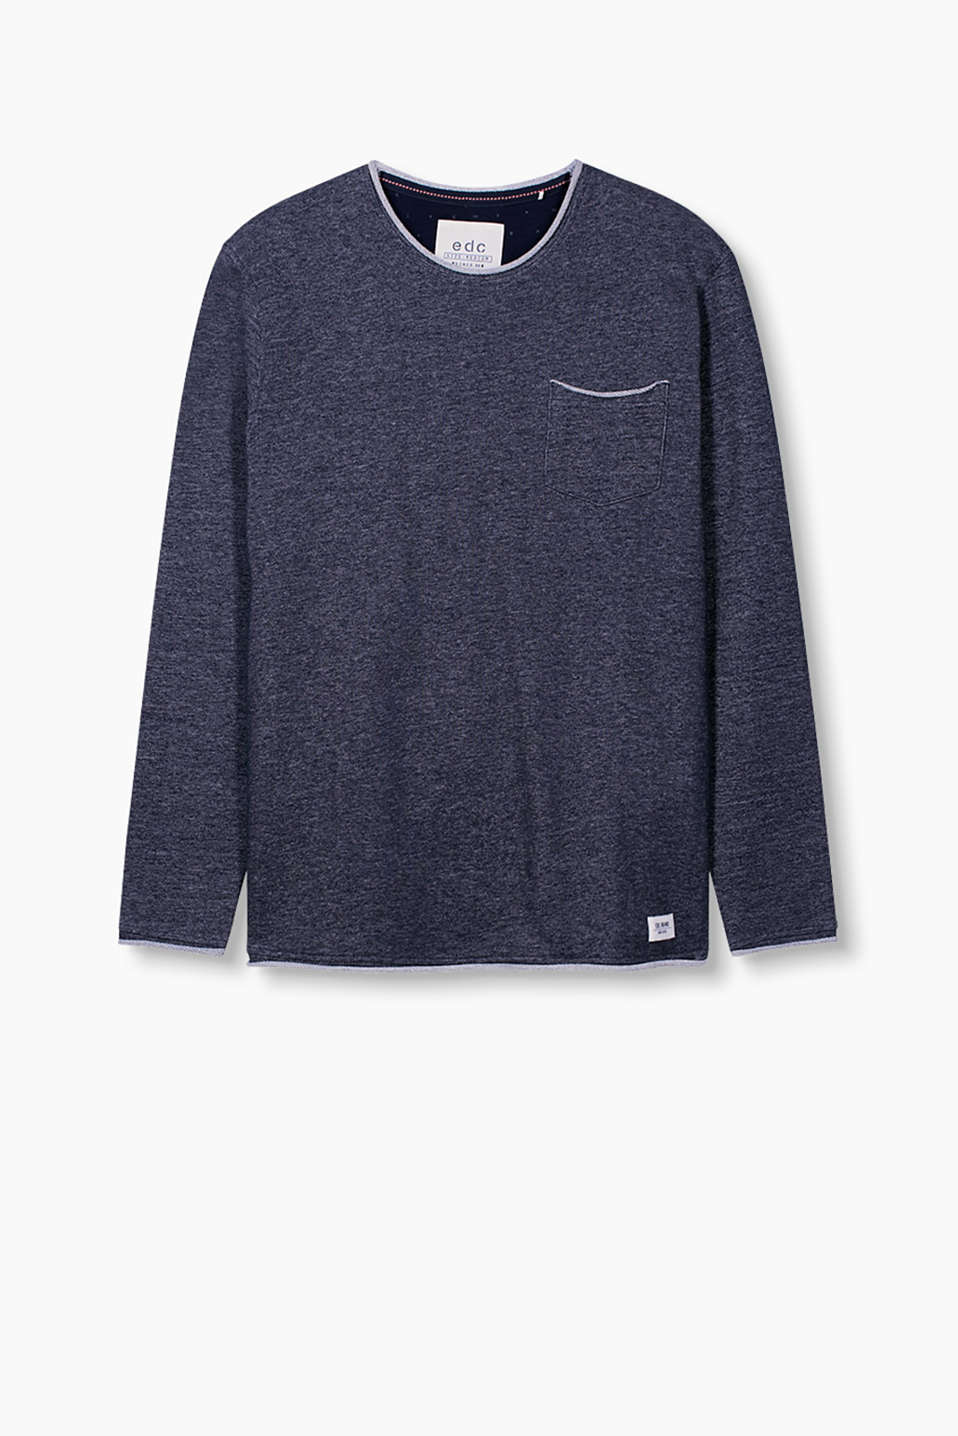 Sweatshirt with breast pocket and rolled edges in a melange look